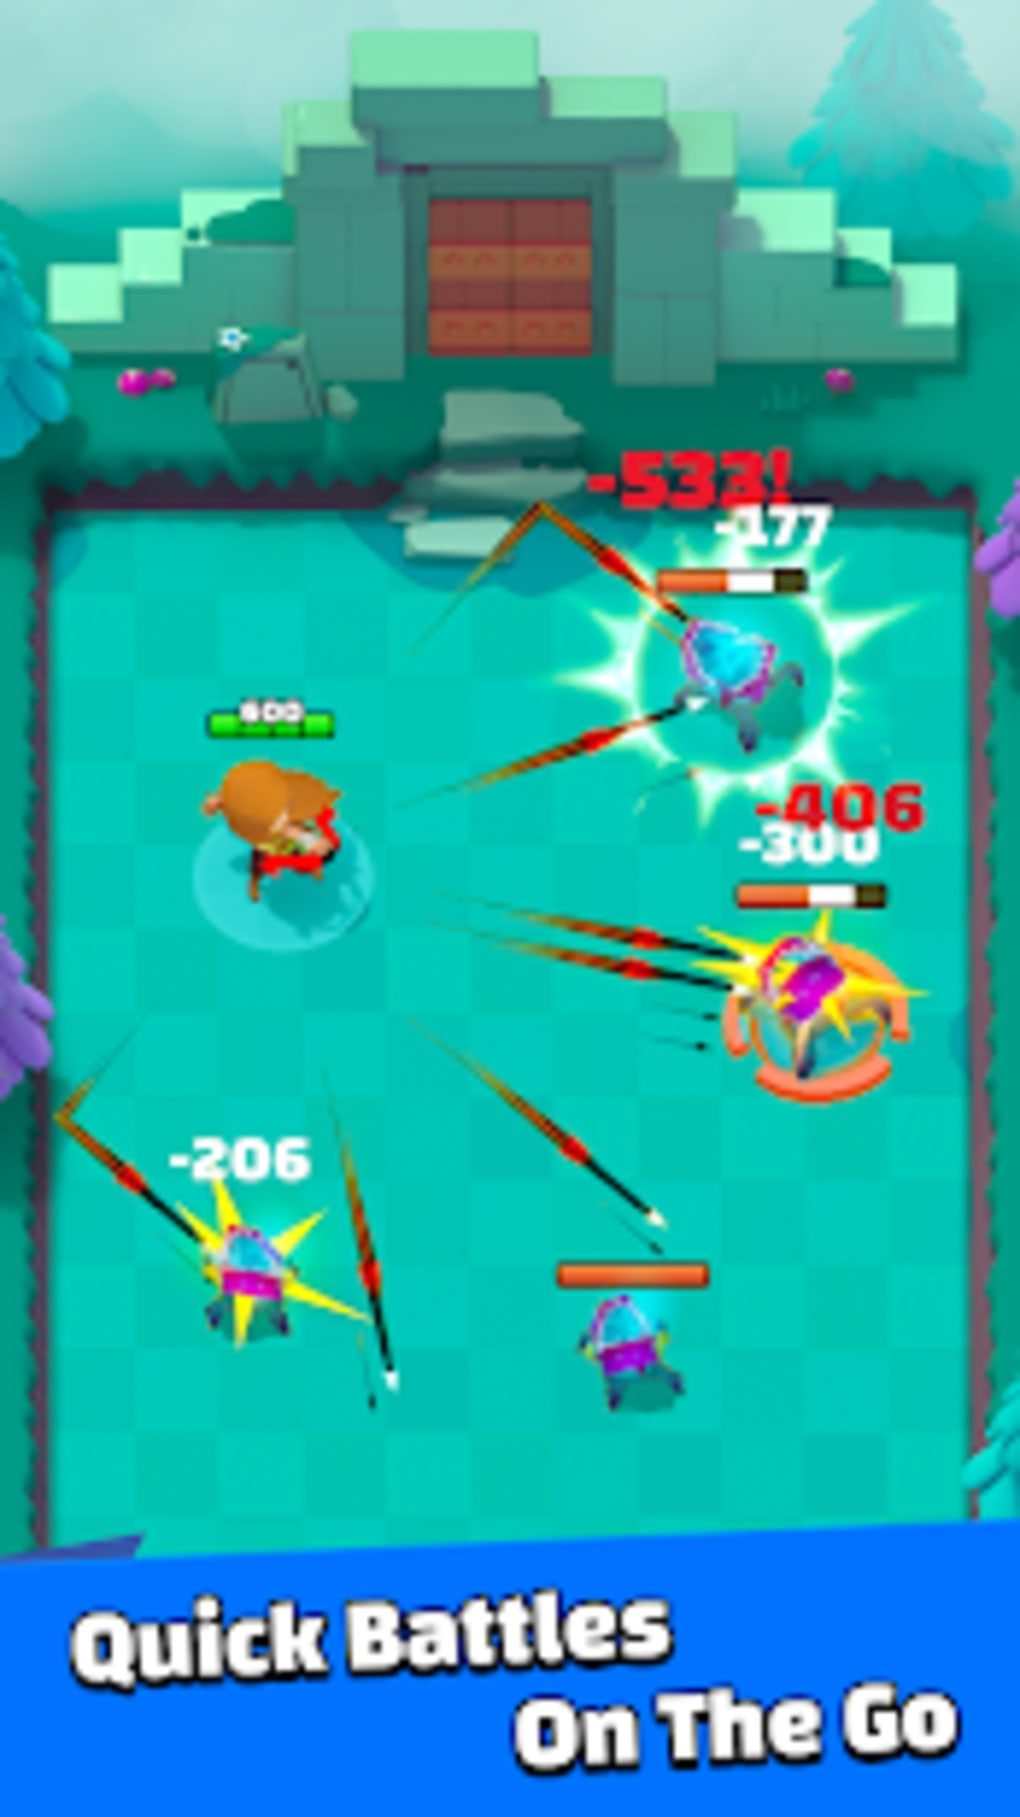 Archeromod apk download for pc, ios and android